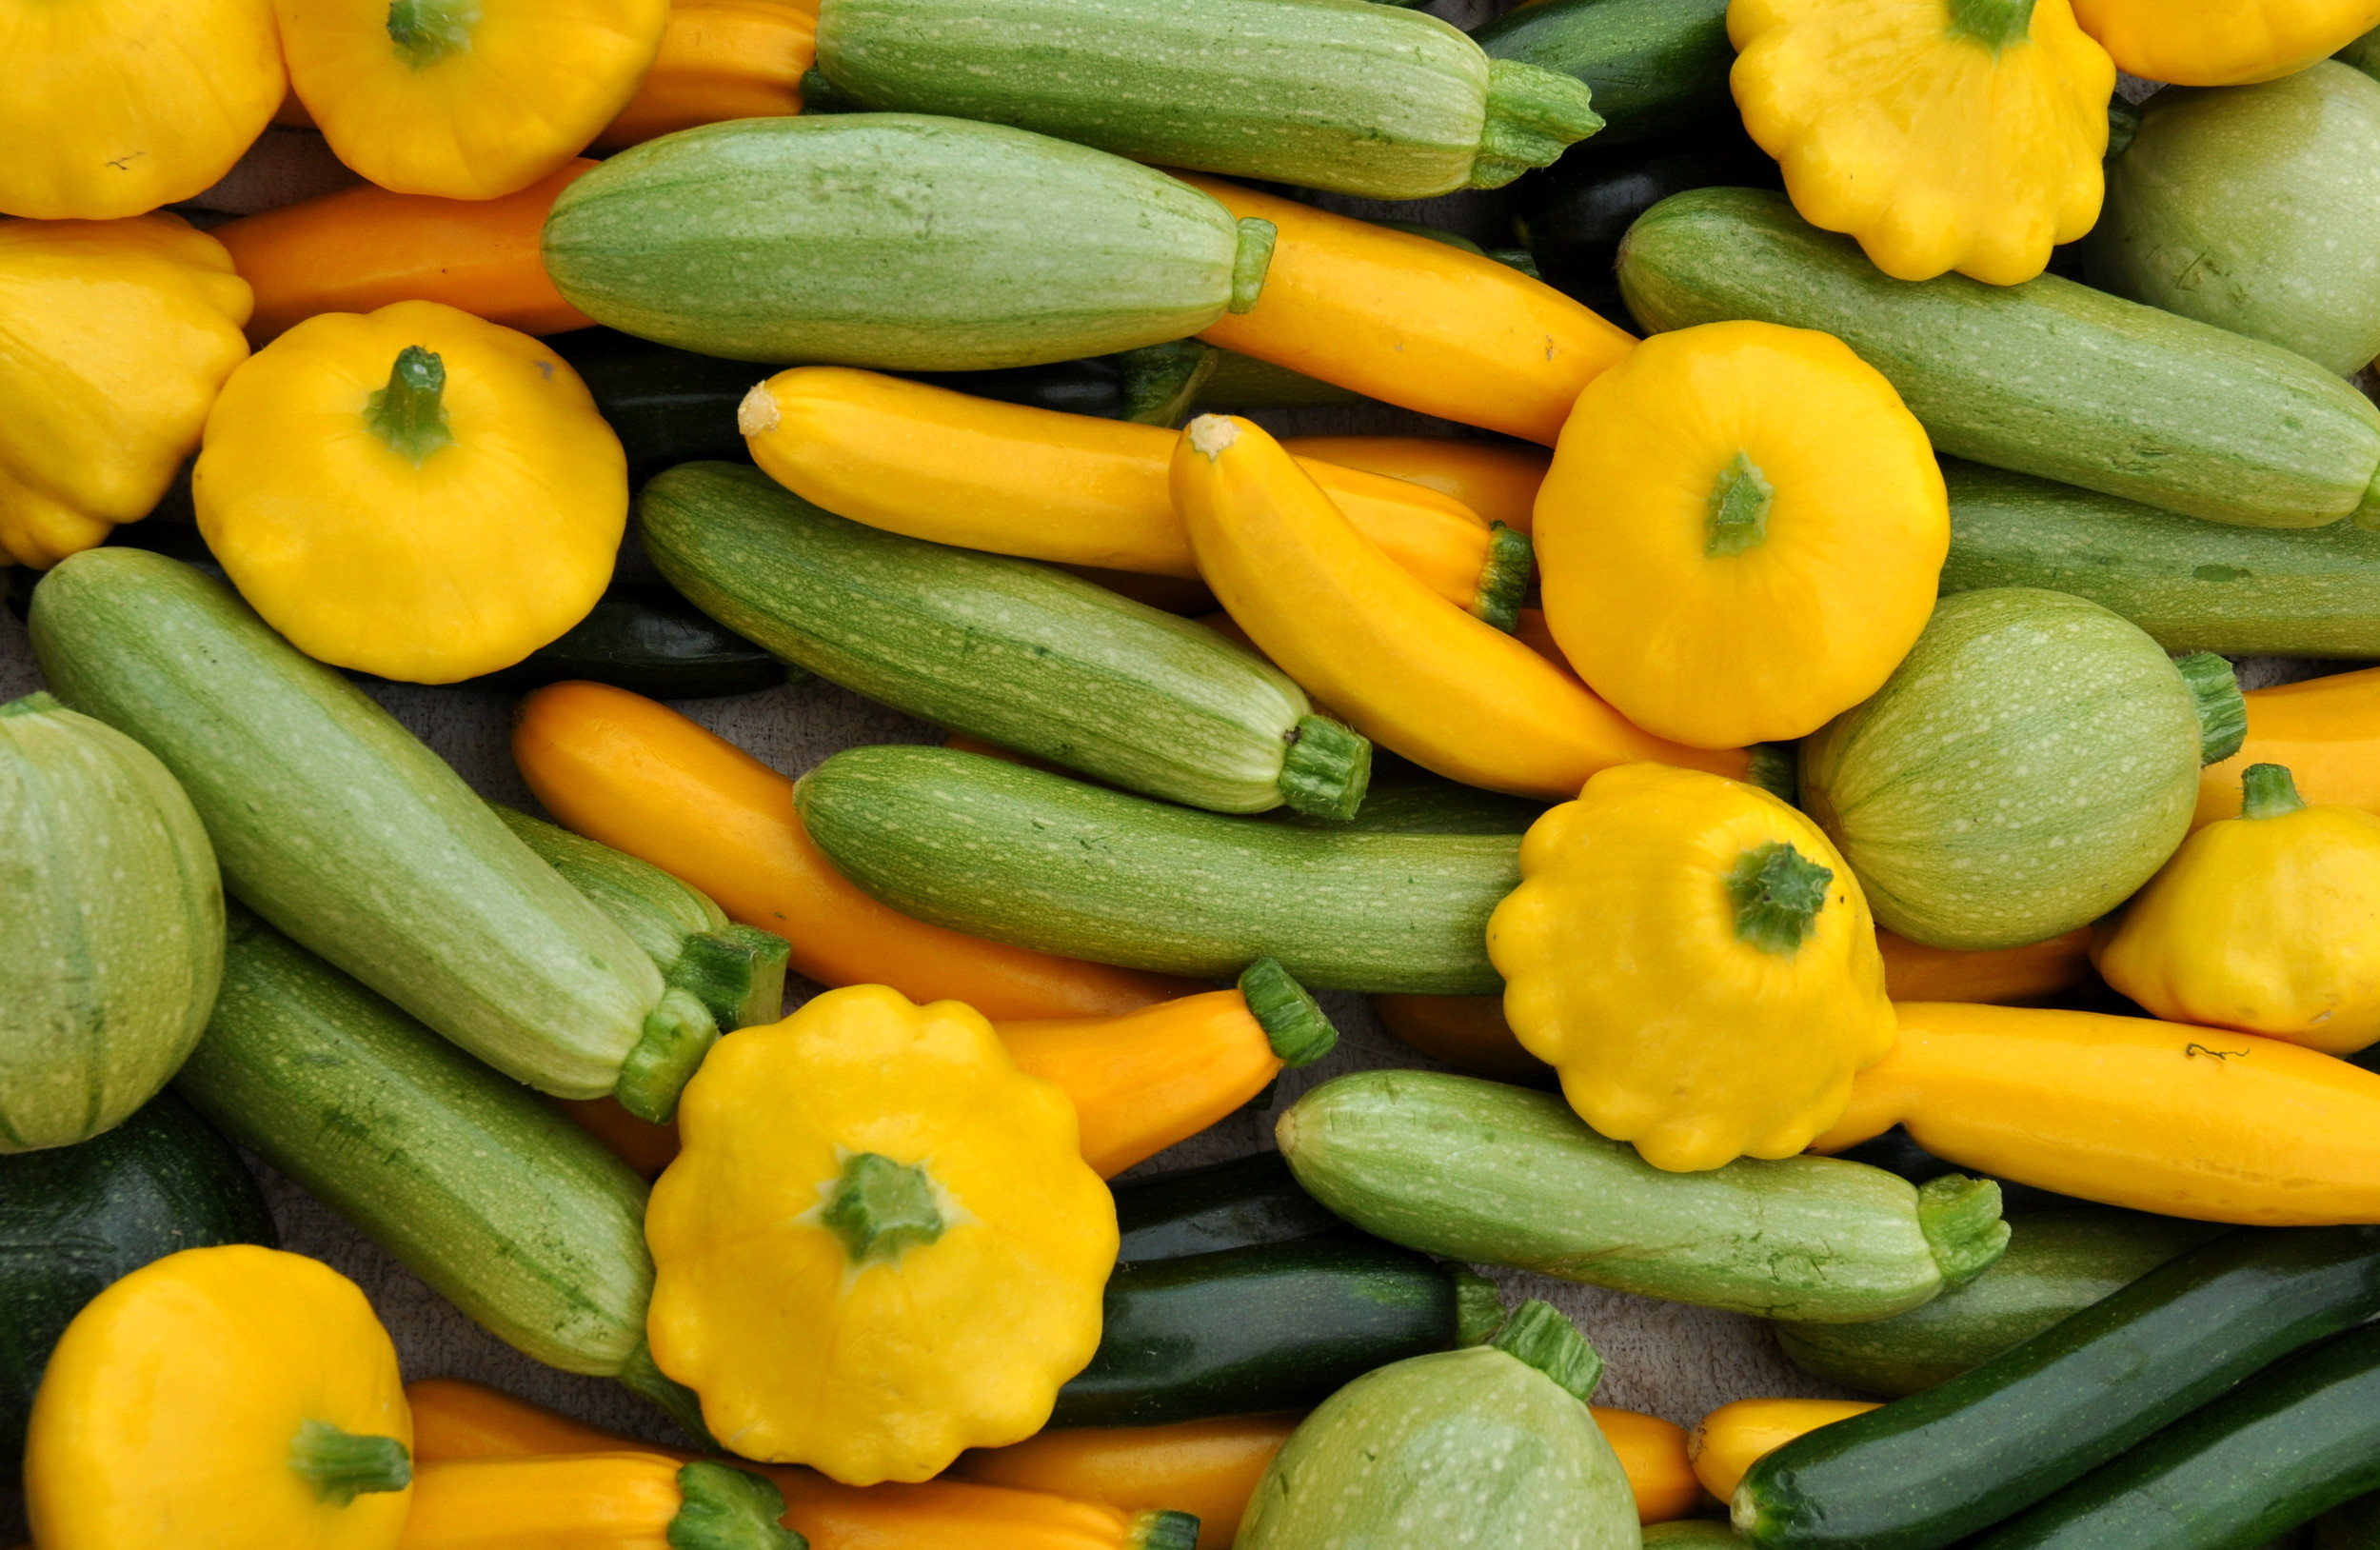 Baby summer squash from Growing Things Farm. Photo copyright 2014 by Zachary D. Lyons.